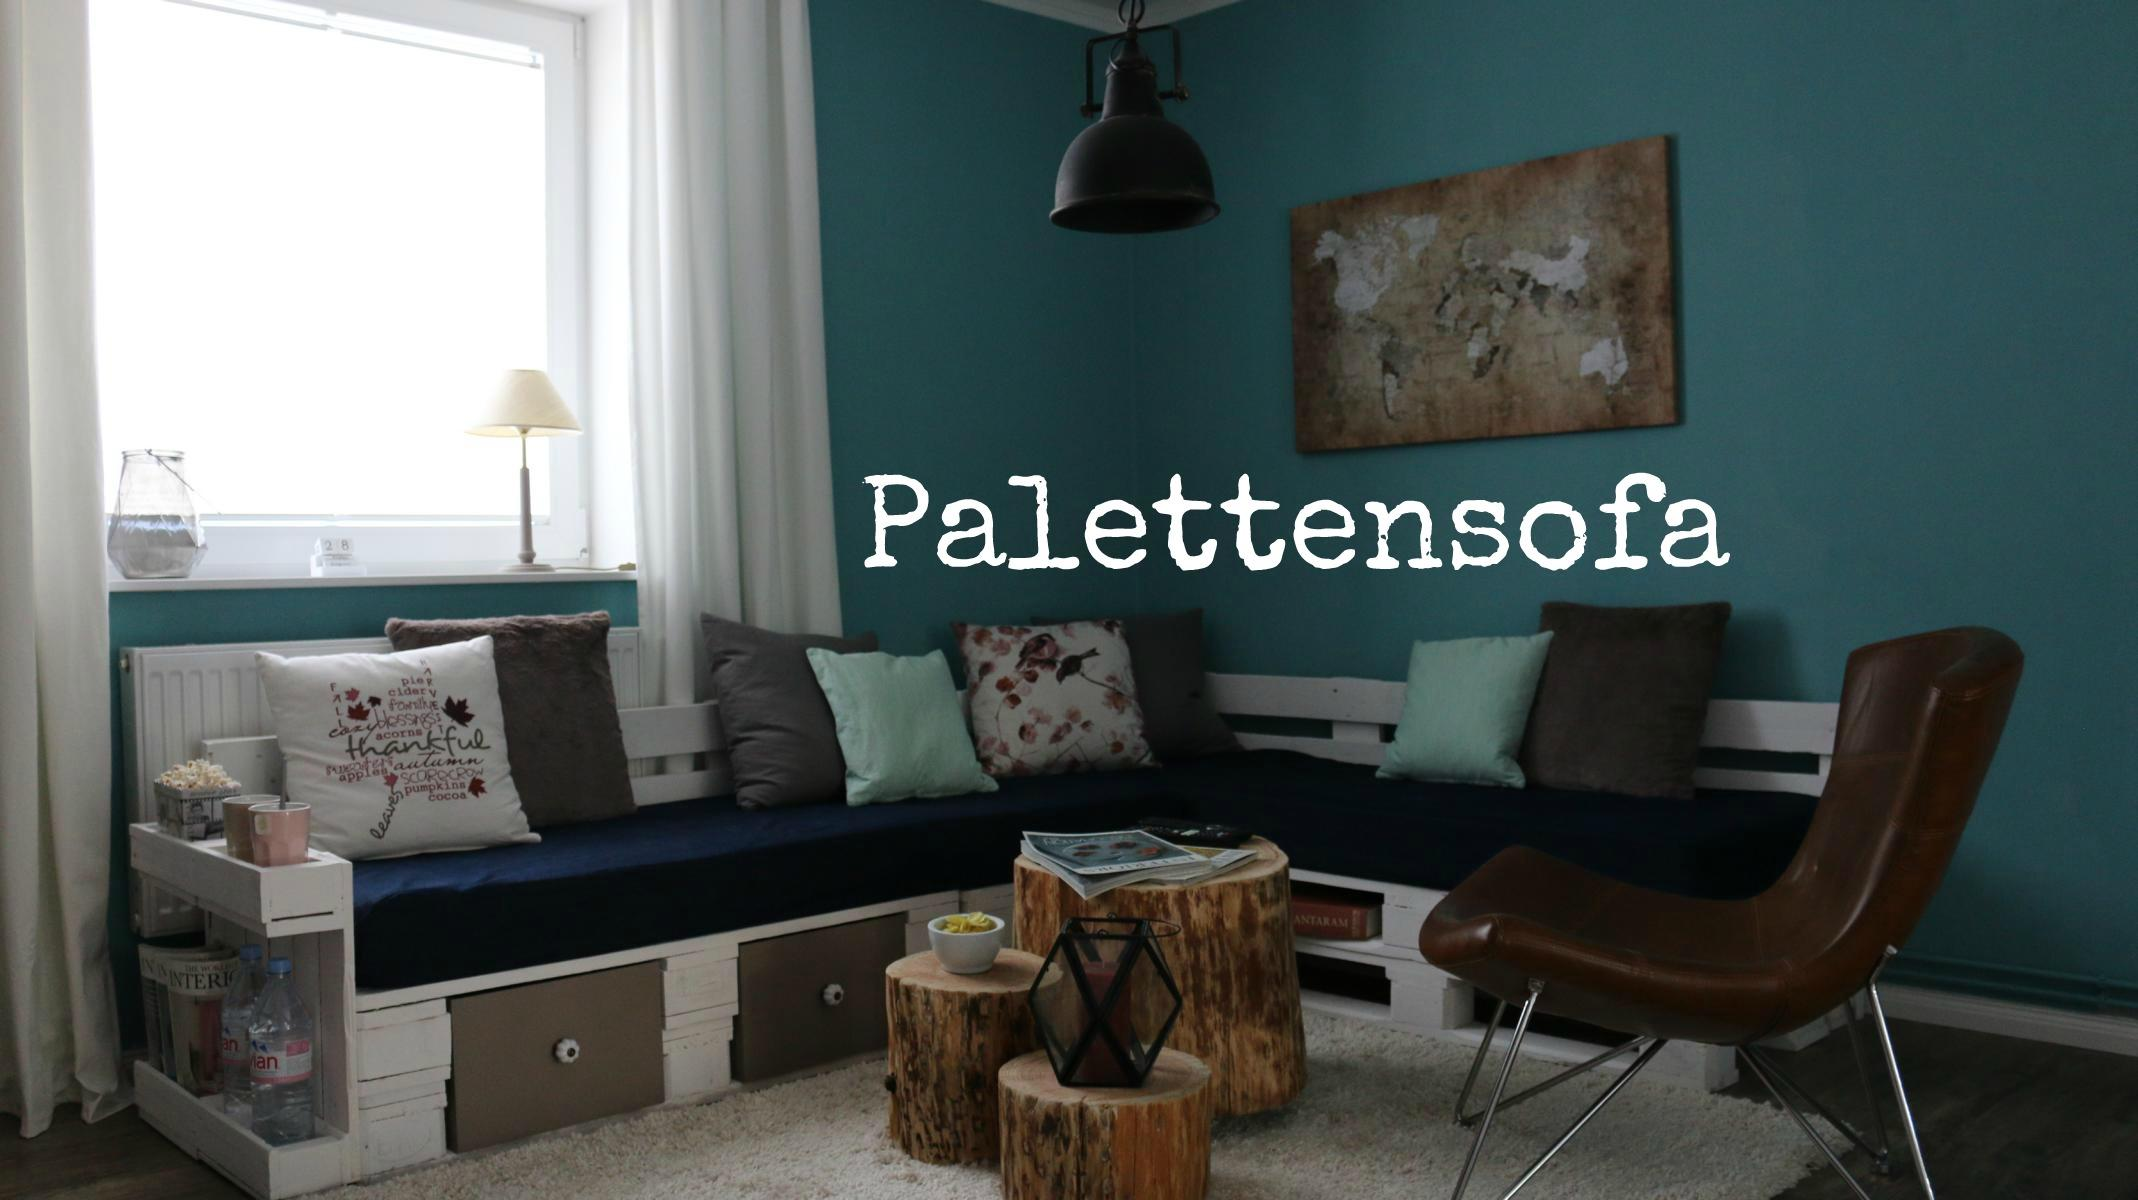 palettensofa sofa aus paletten anleitungen ideen shop. Black Bedroom Furniture Sets. Home Design Ideas